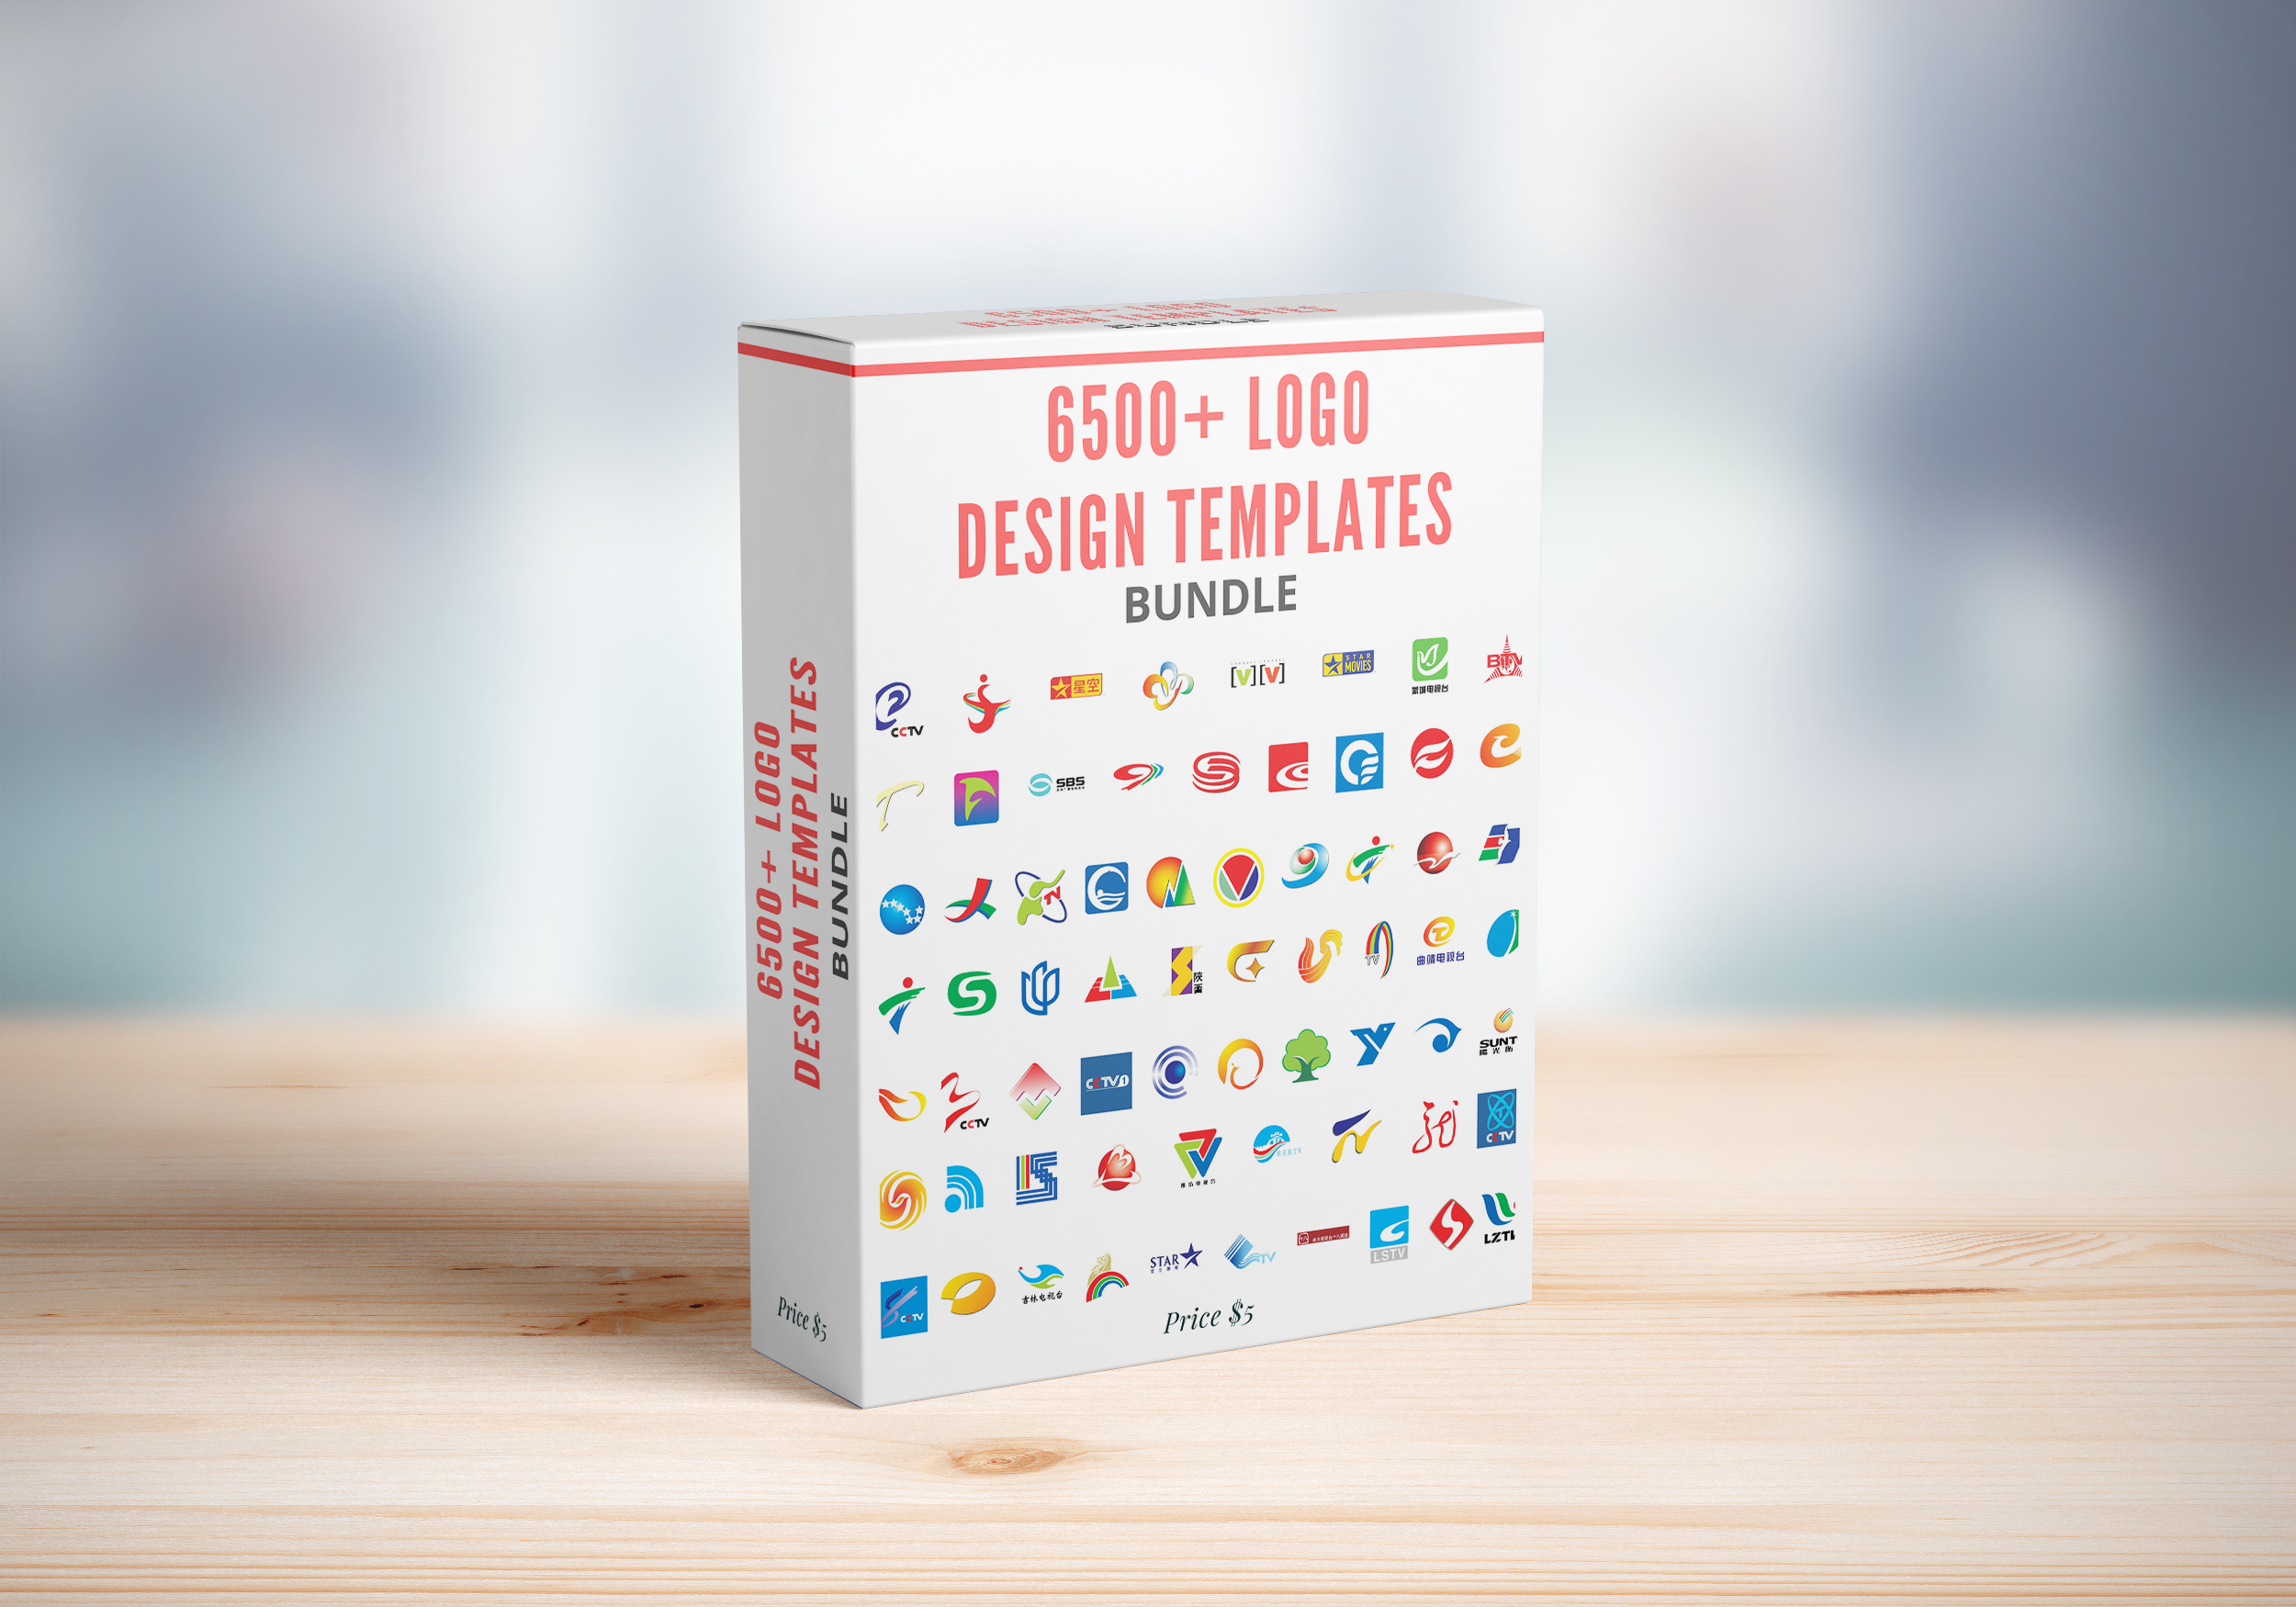 I Will Give You 6500+ Logo Design Templates